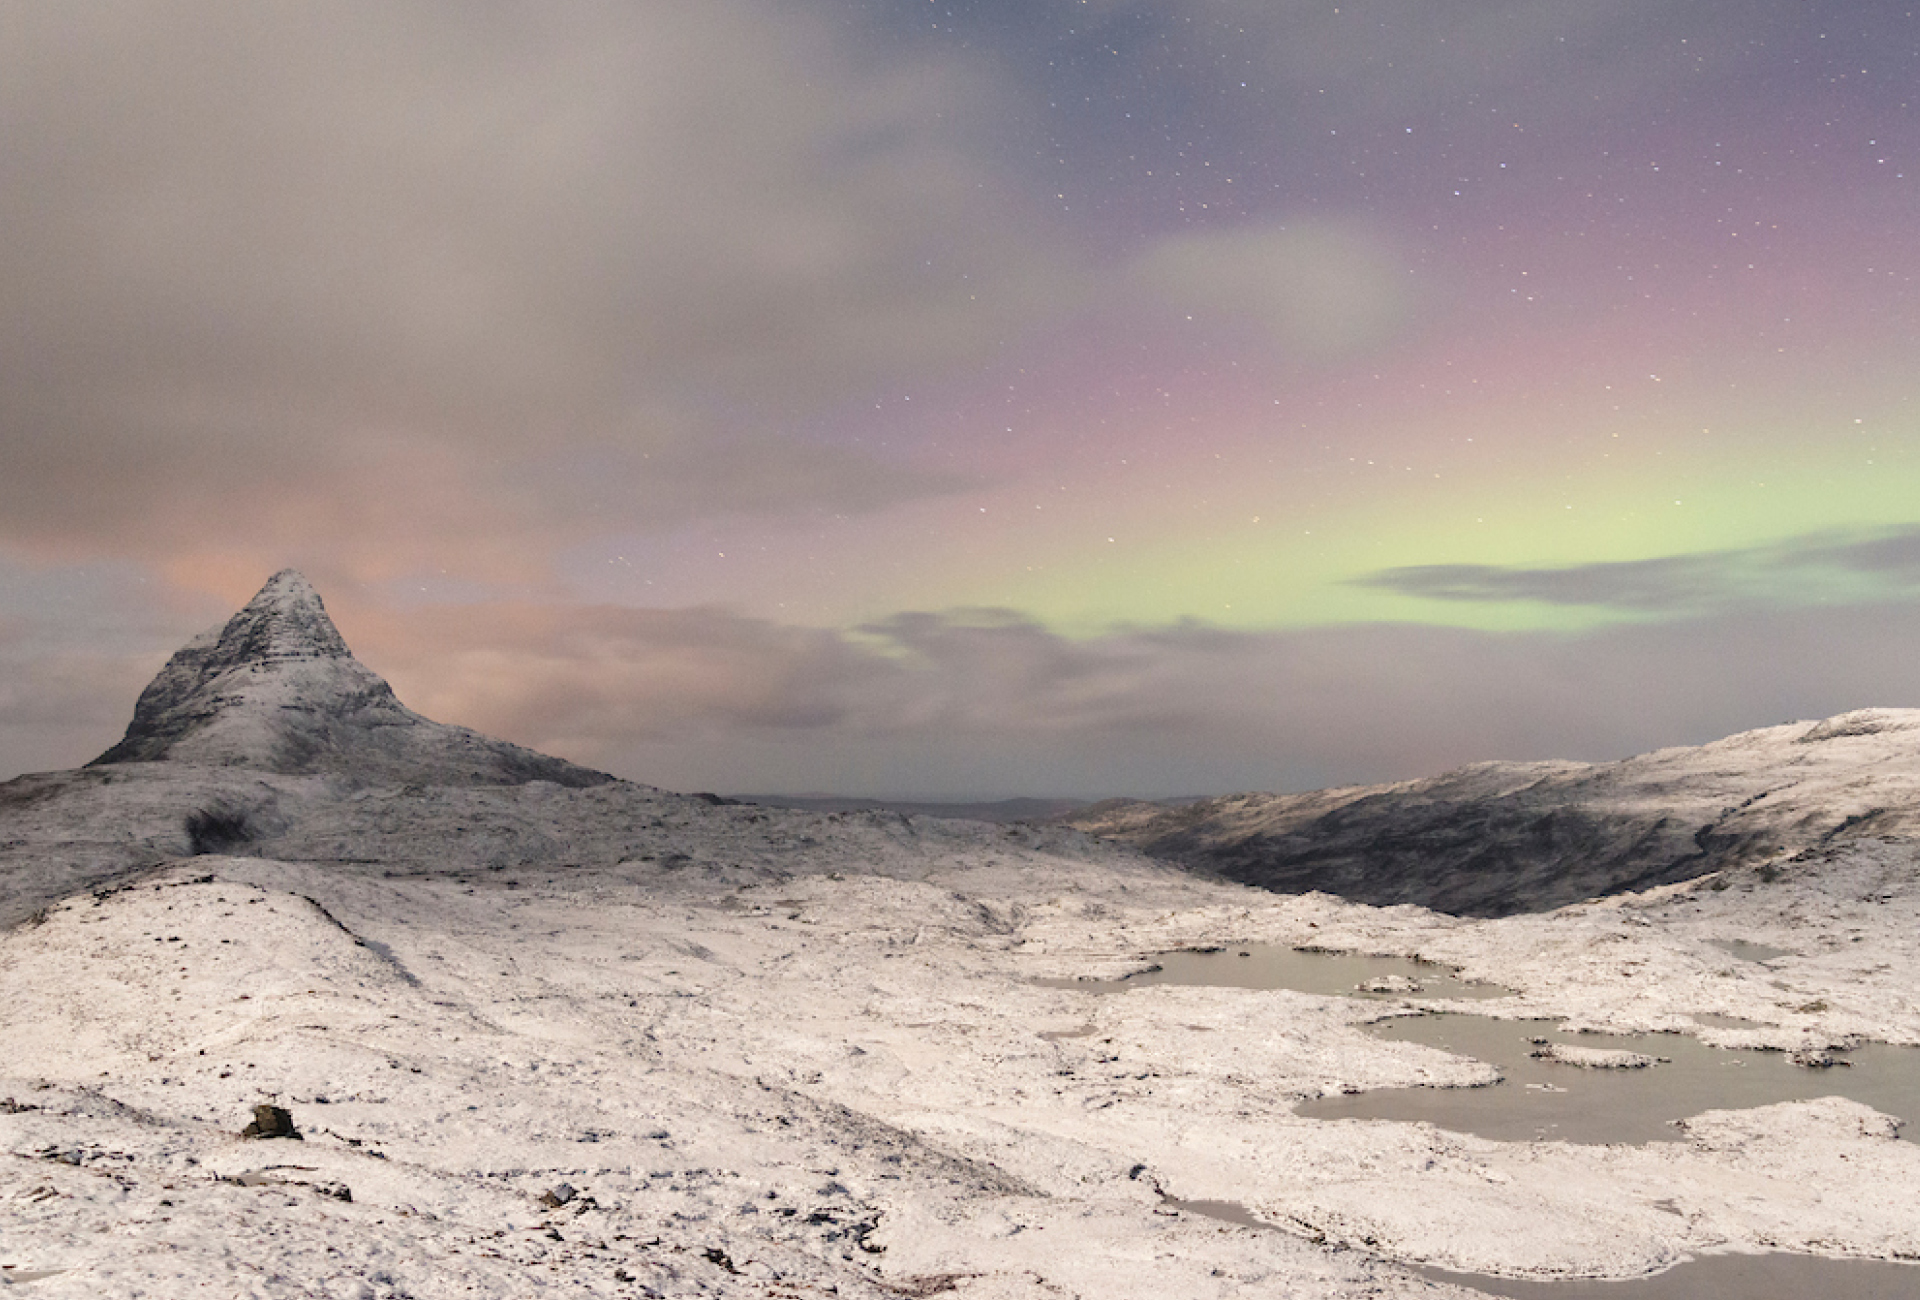 Suilven in winter - Scotland the Big Picture